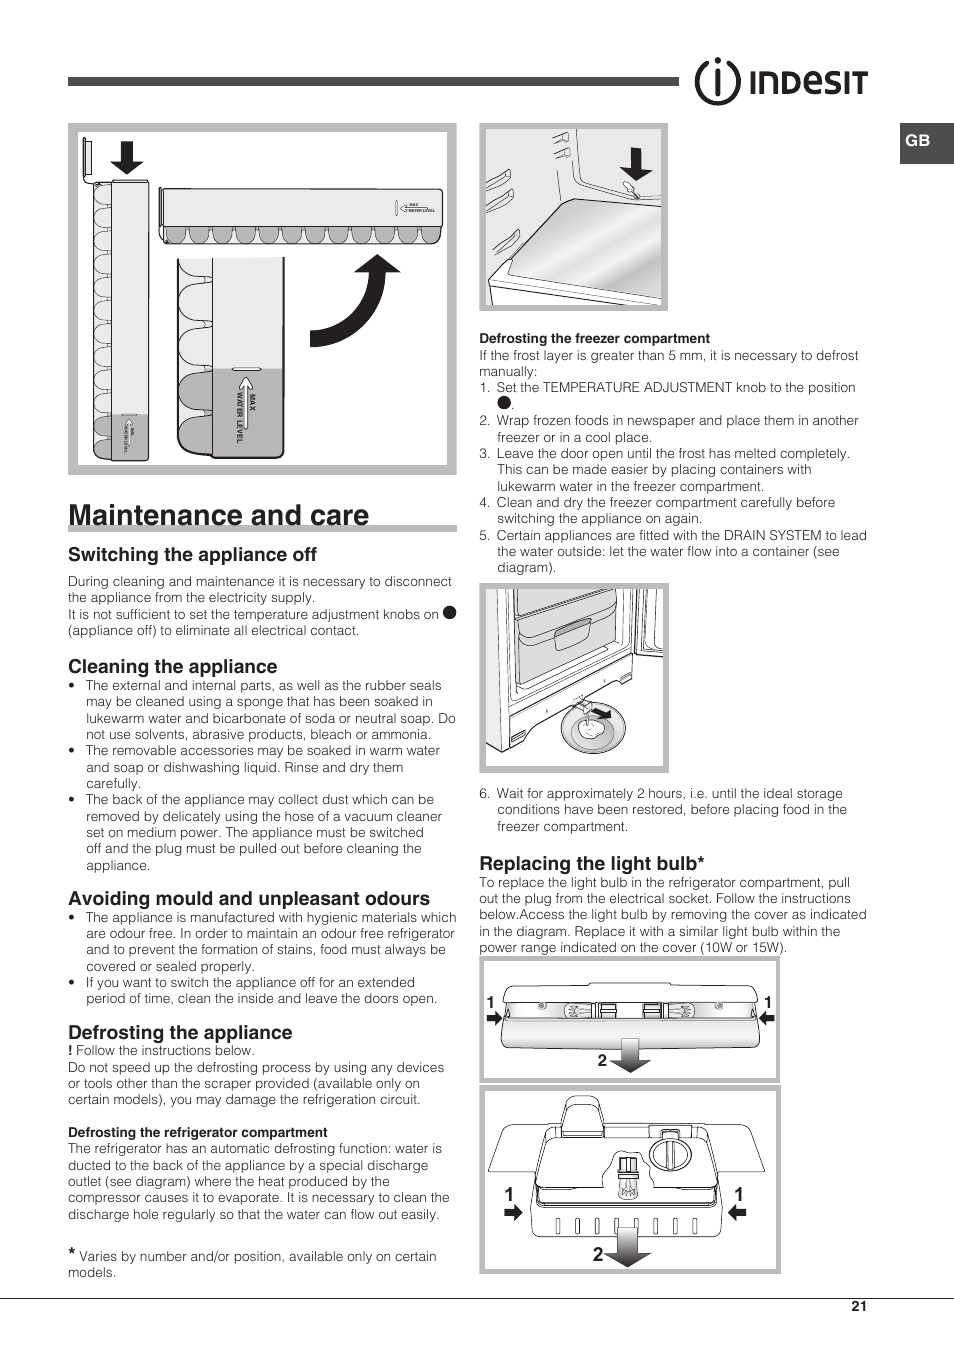 Maintenance and care, Switching the appliance off, Cleaning the appliance |  Indesit BIAA-13-X User Manual | Page 21 / 68